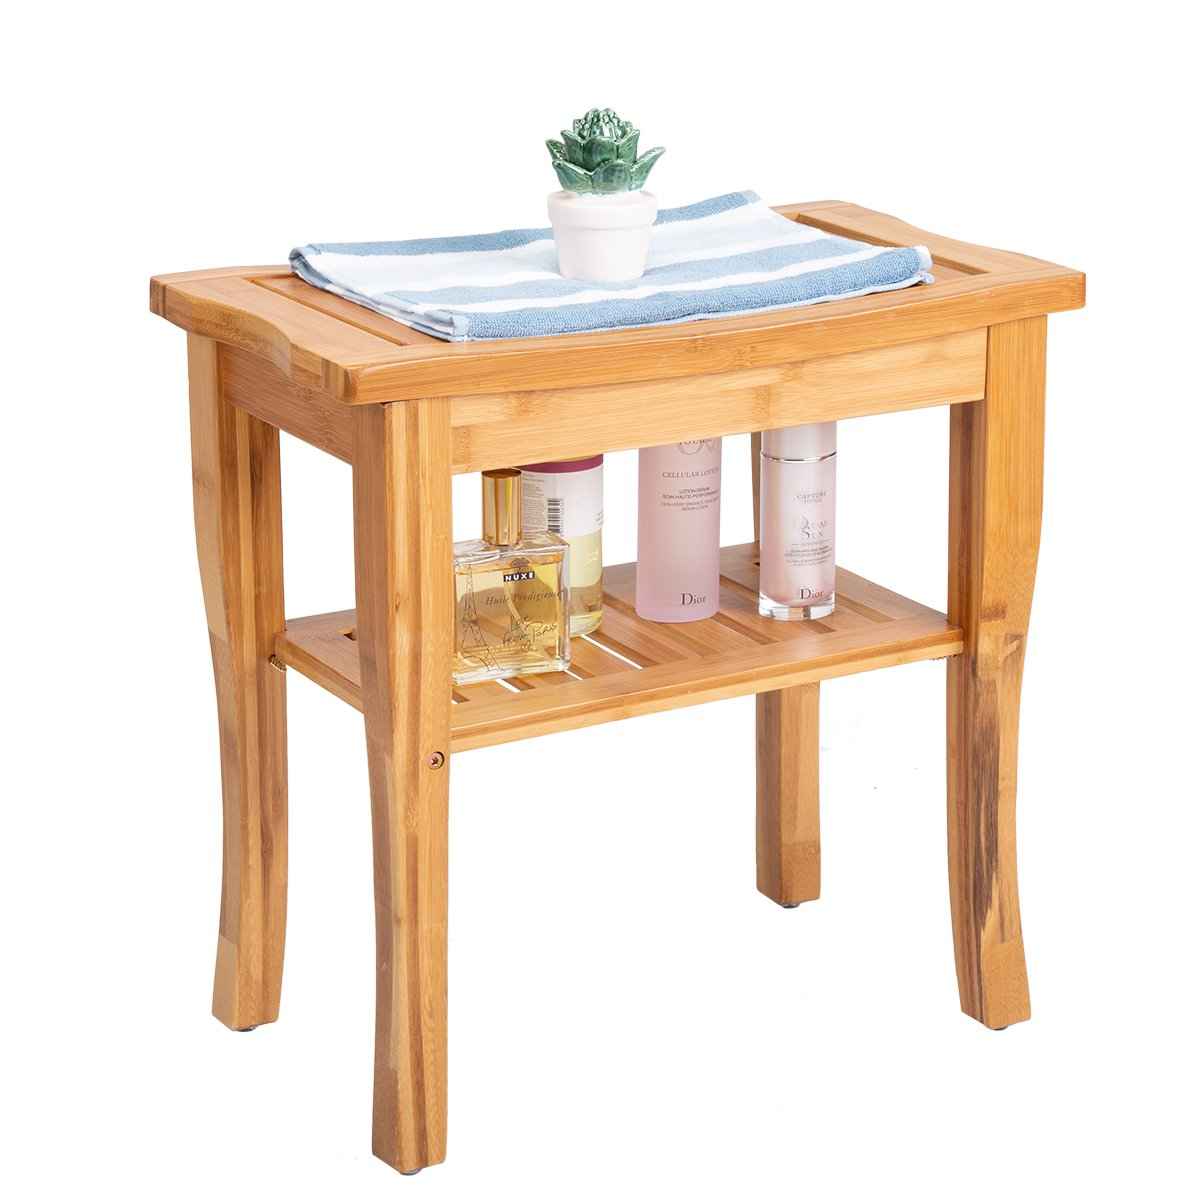 Frond Bamboo Shower Bench Seat, Bathroom Spa Bath Cornor Stool with 2 Tier Storage Shelf - 100% Natural Bamboo Perfect for Indoor or Outdoor